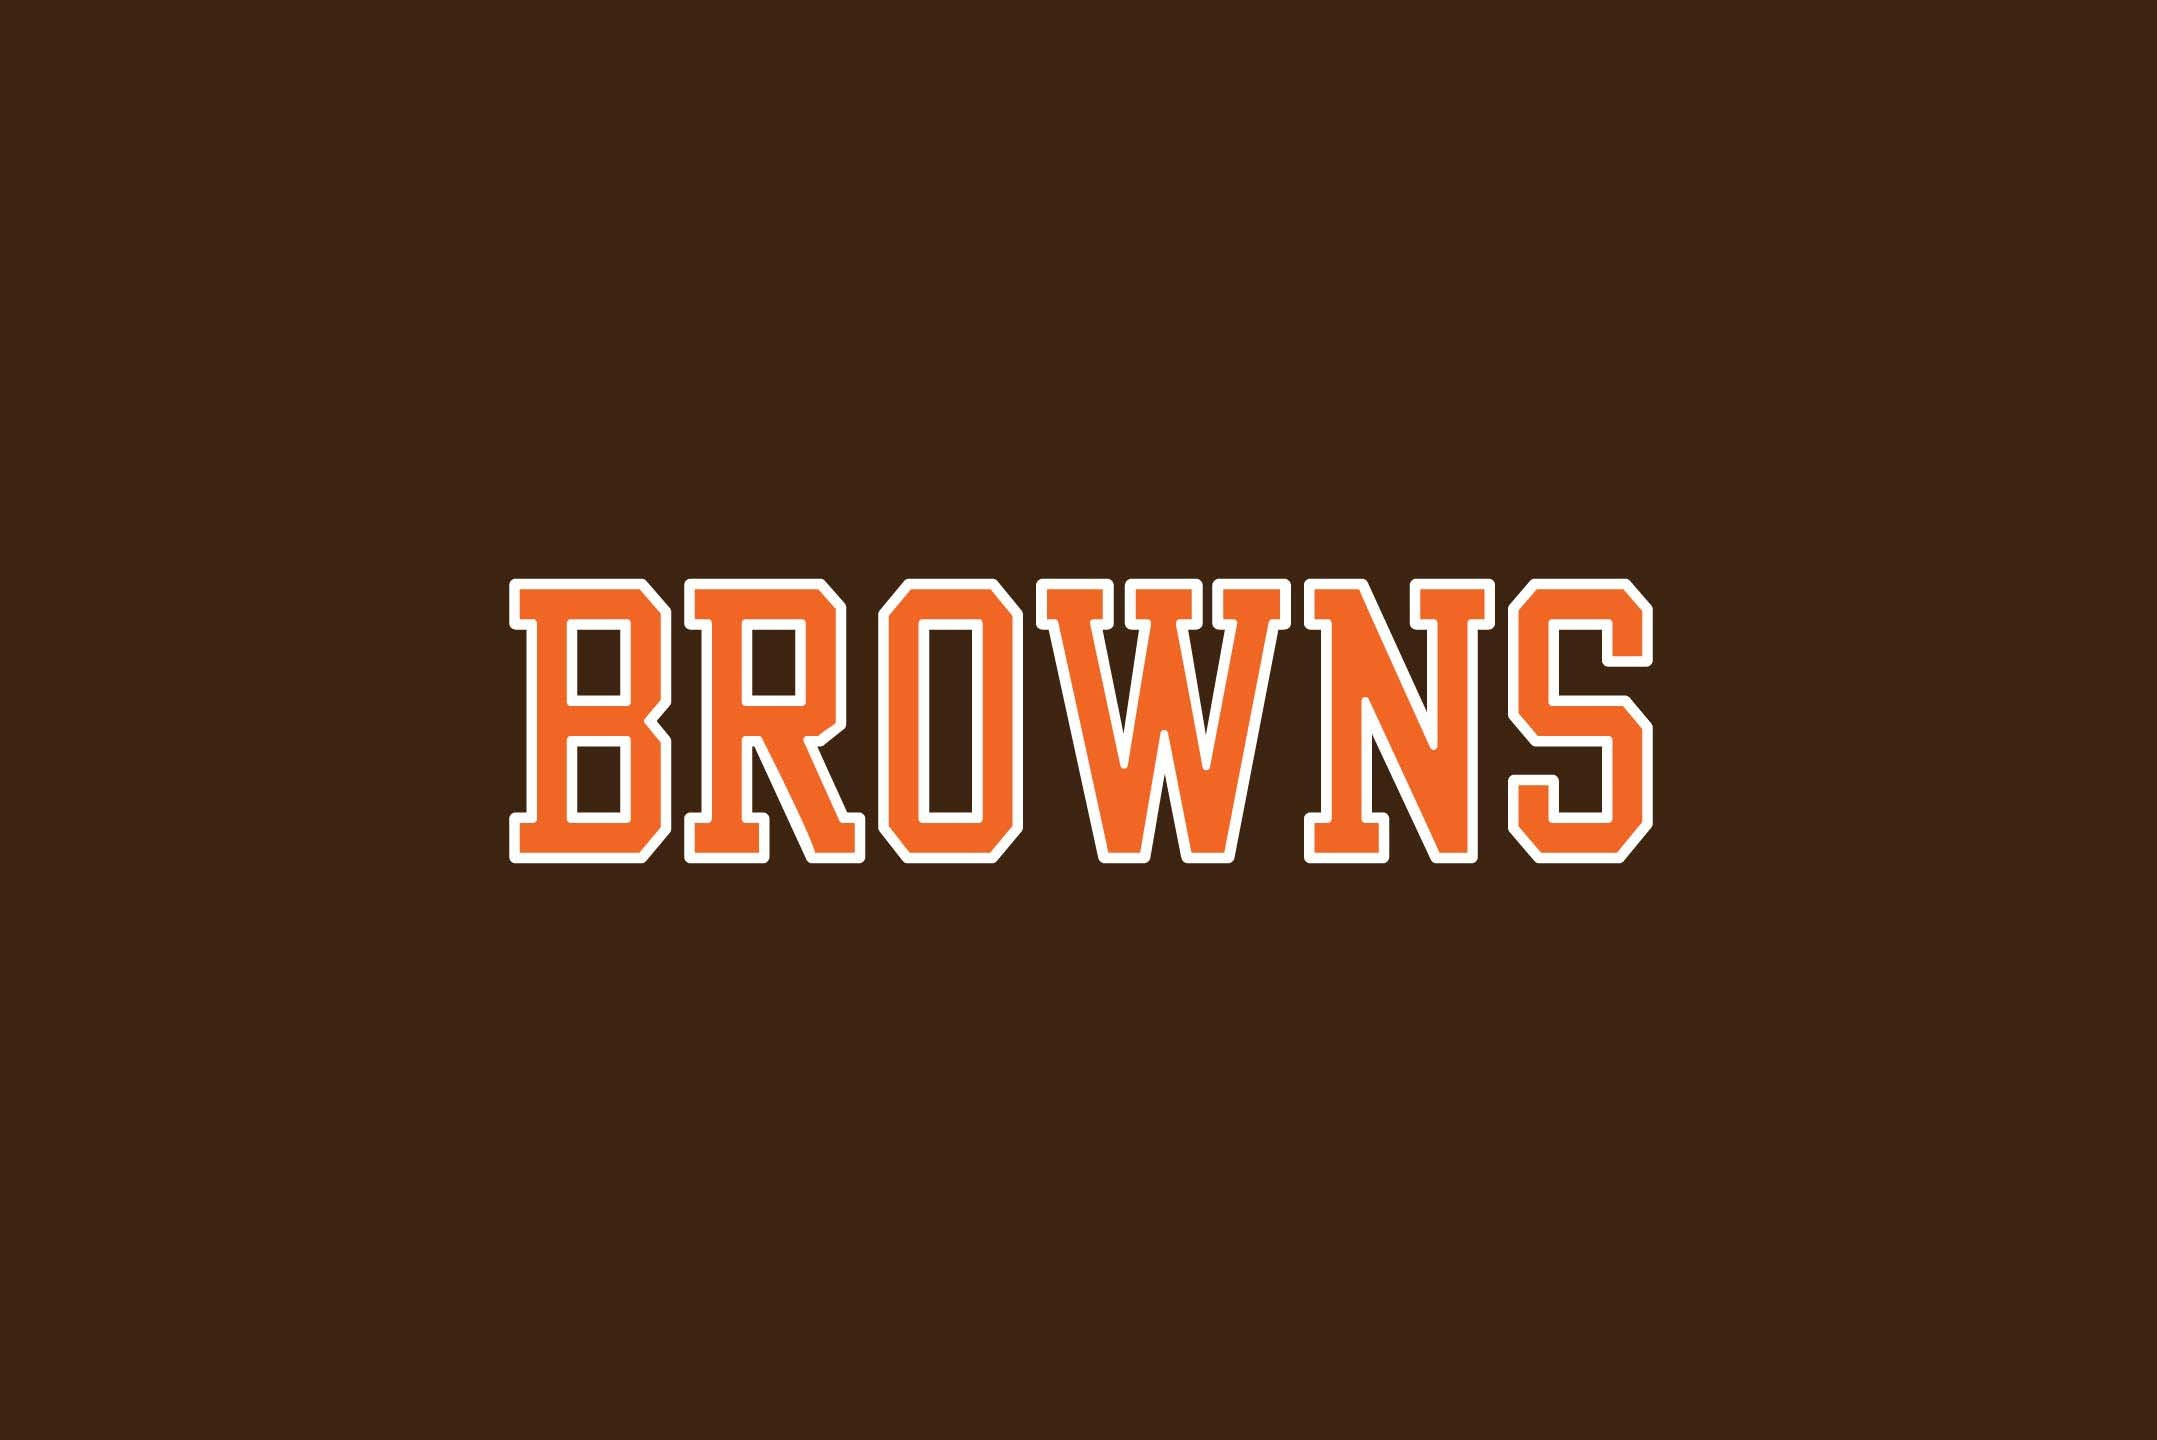 … cleveland browns 2016 wallpapers wallpaper cave …